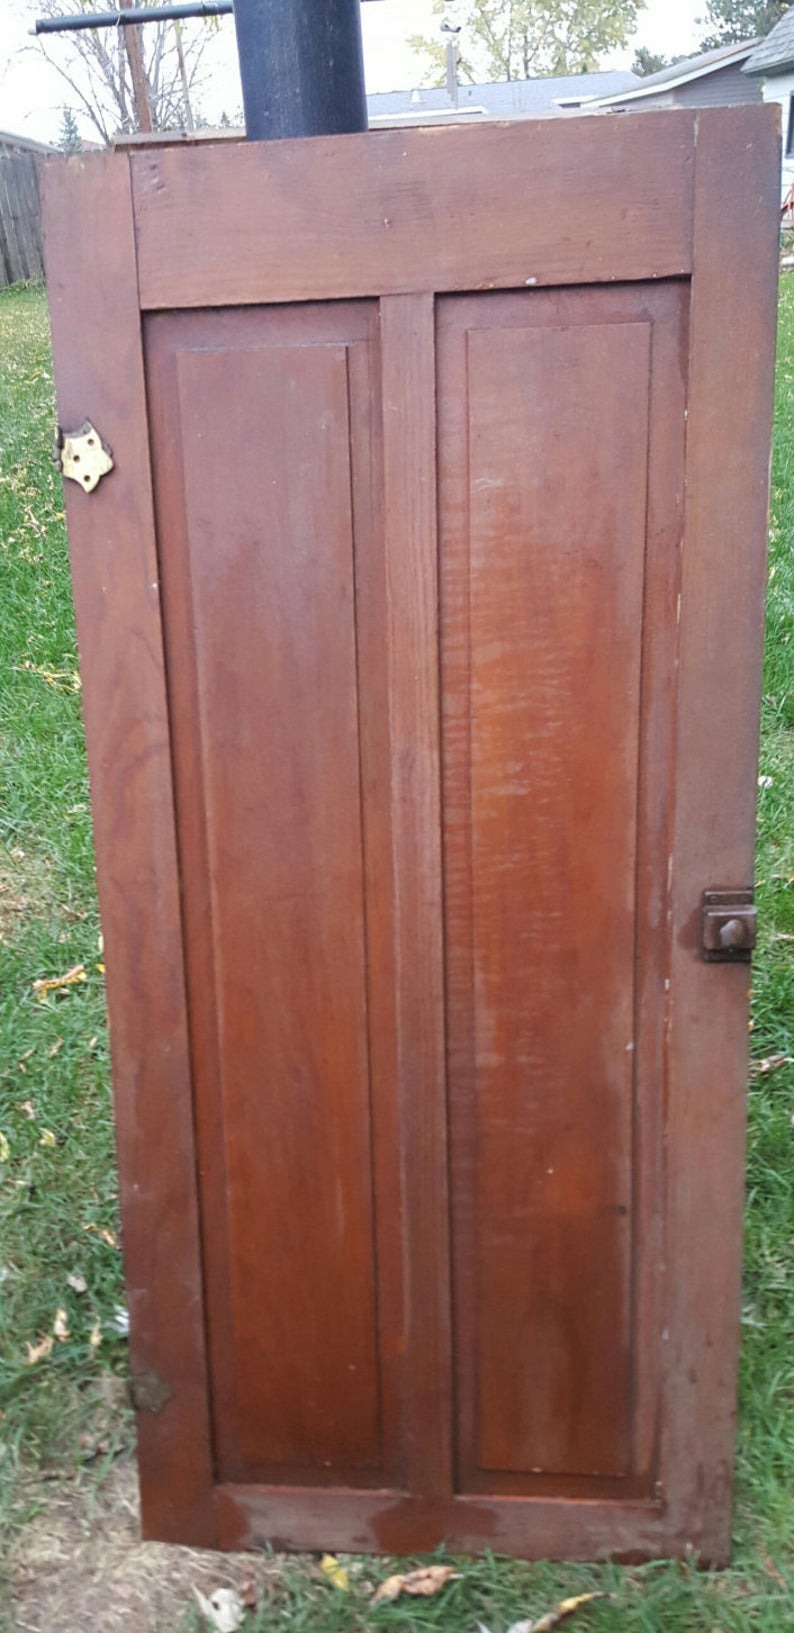 """Premade Cabinet Doors Awesome Old Wood Cabinet Door Antique Cupboard Door Architectural Salvage Recessed Two Panel solid Wood Hardware Hinges 18"""" X 44 5 8"""" D9"""